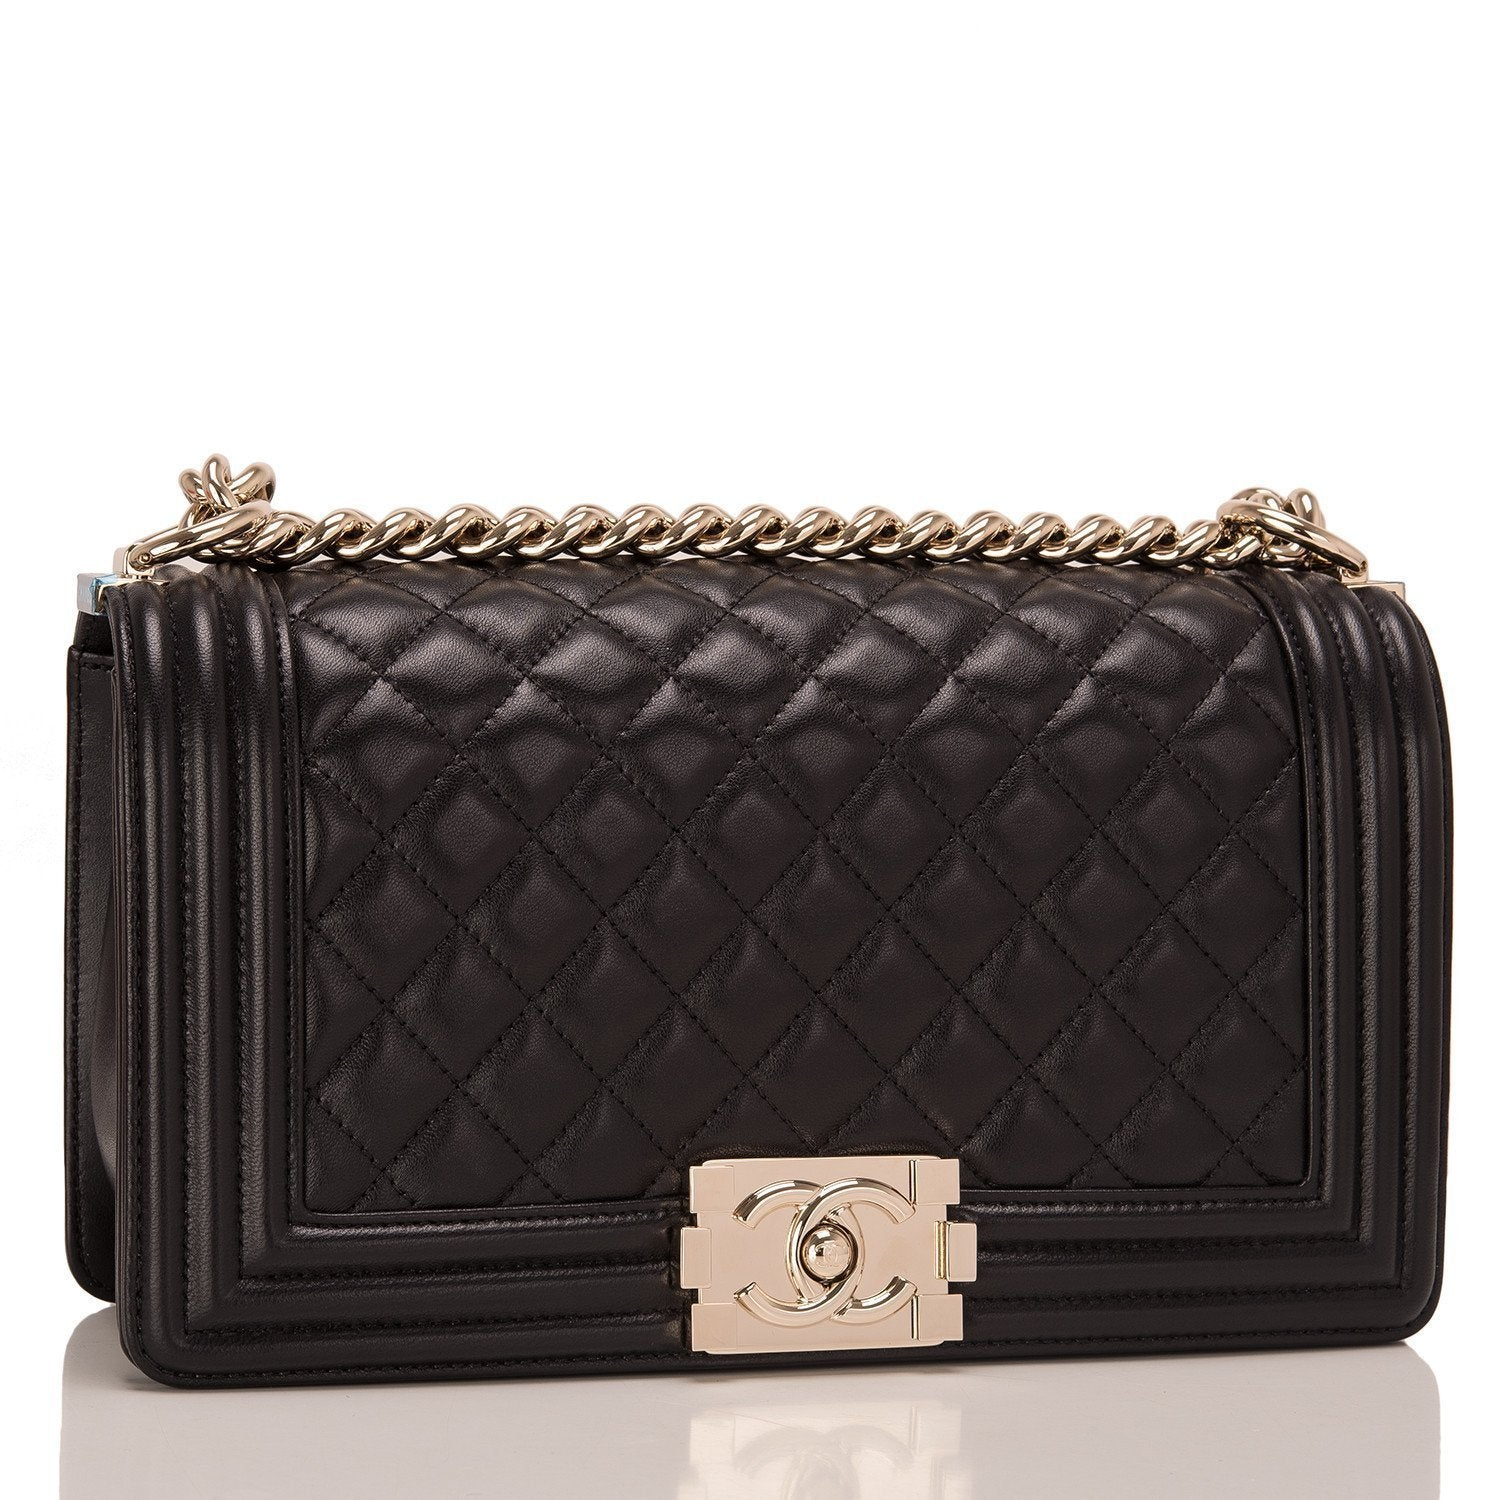 Chanel Black Lambskin Medium Boy Bag Handbags